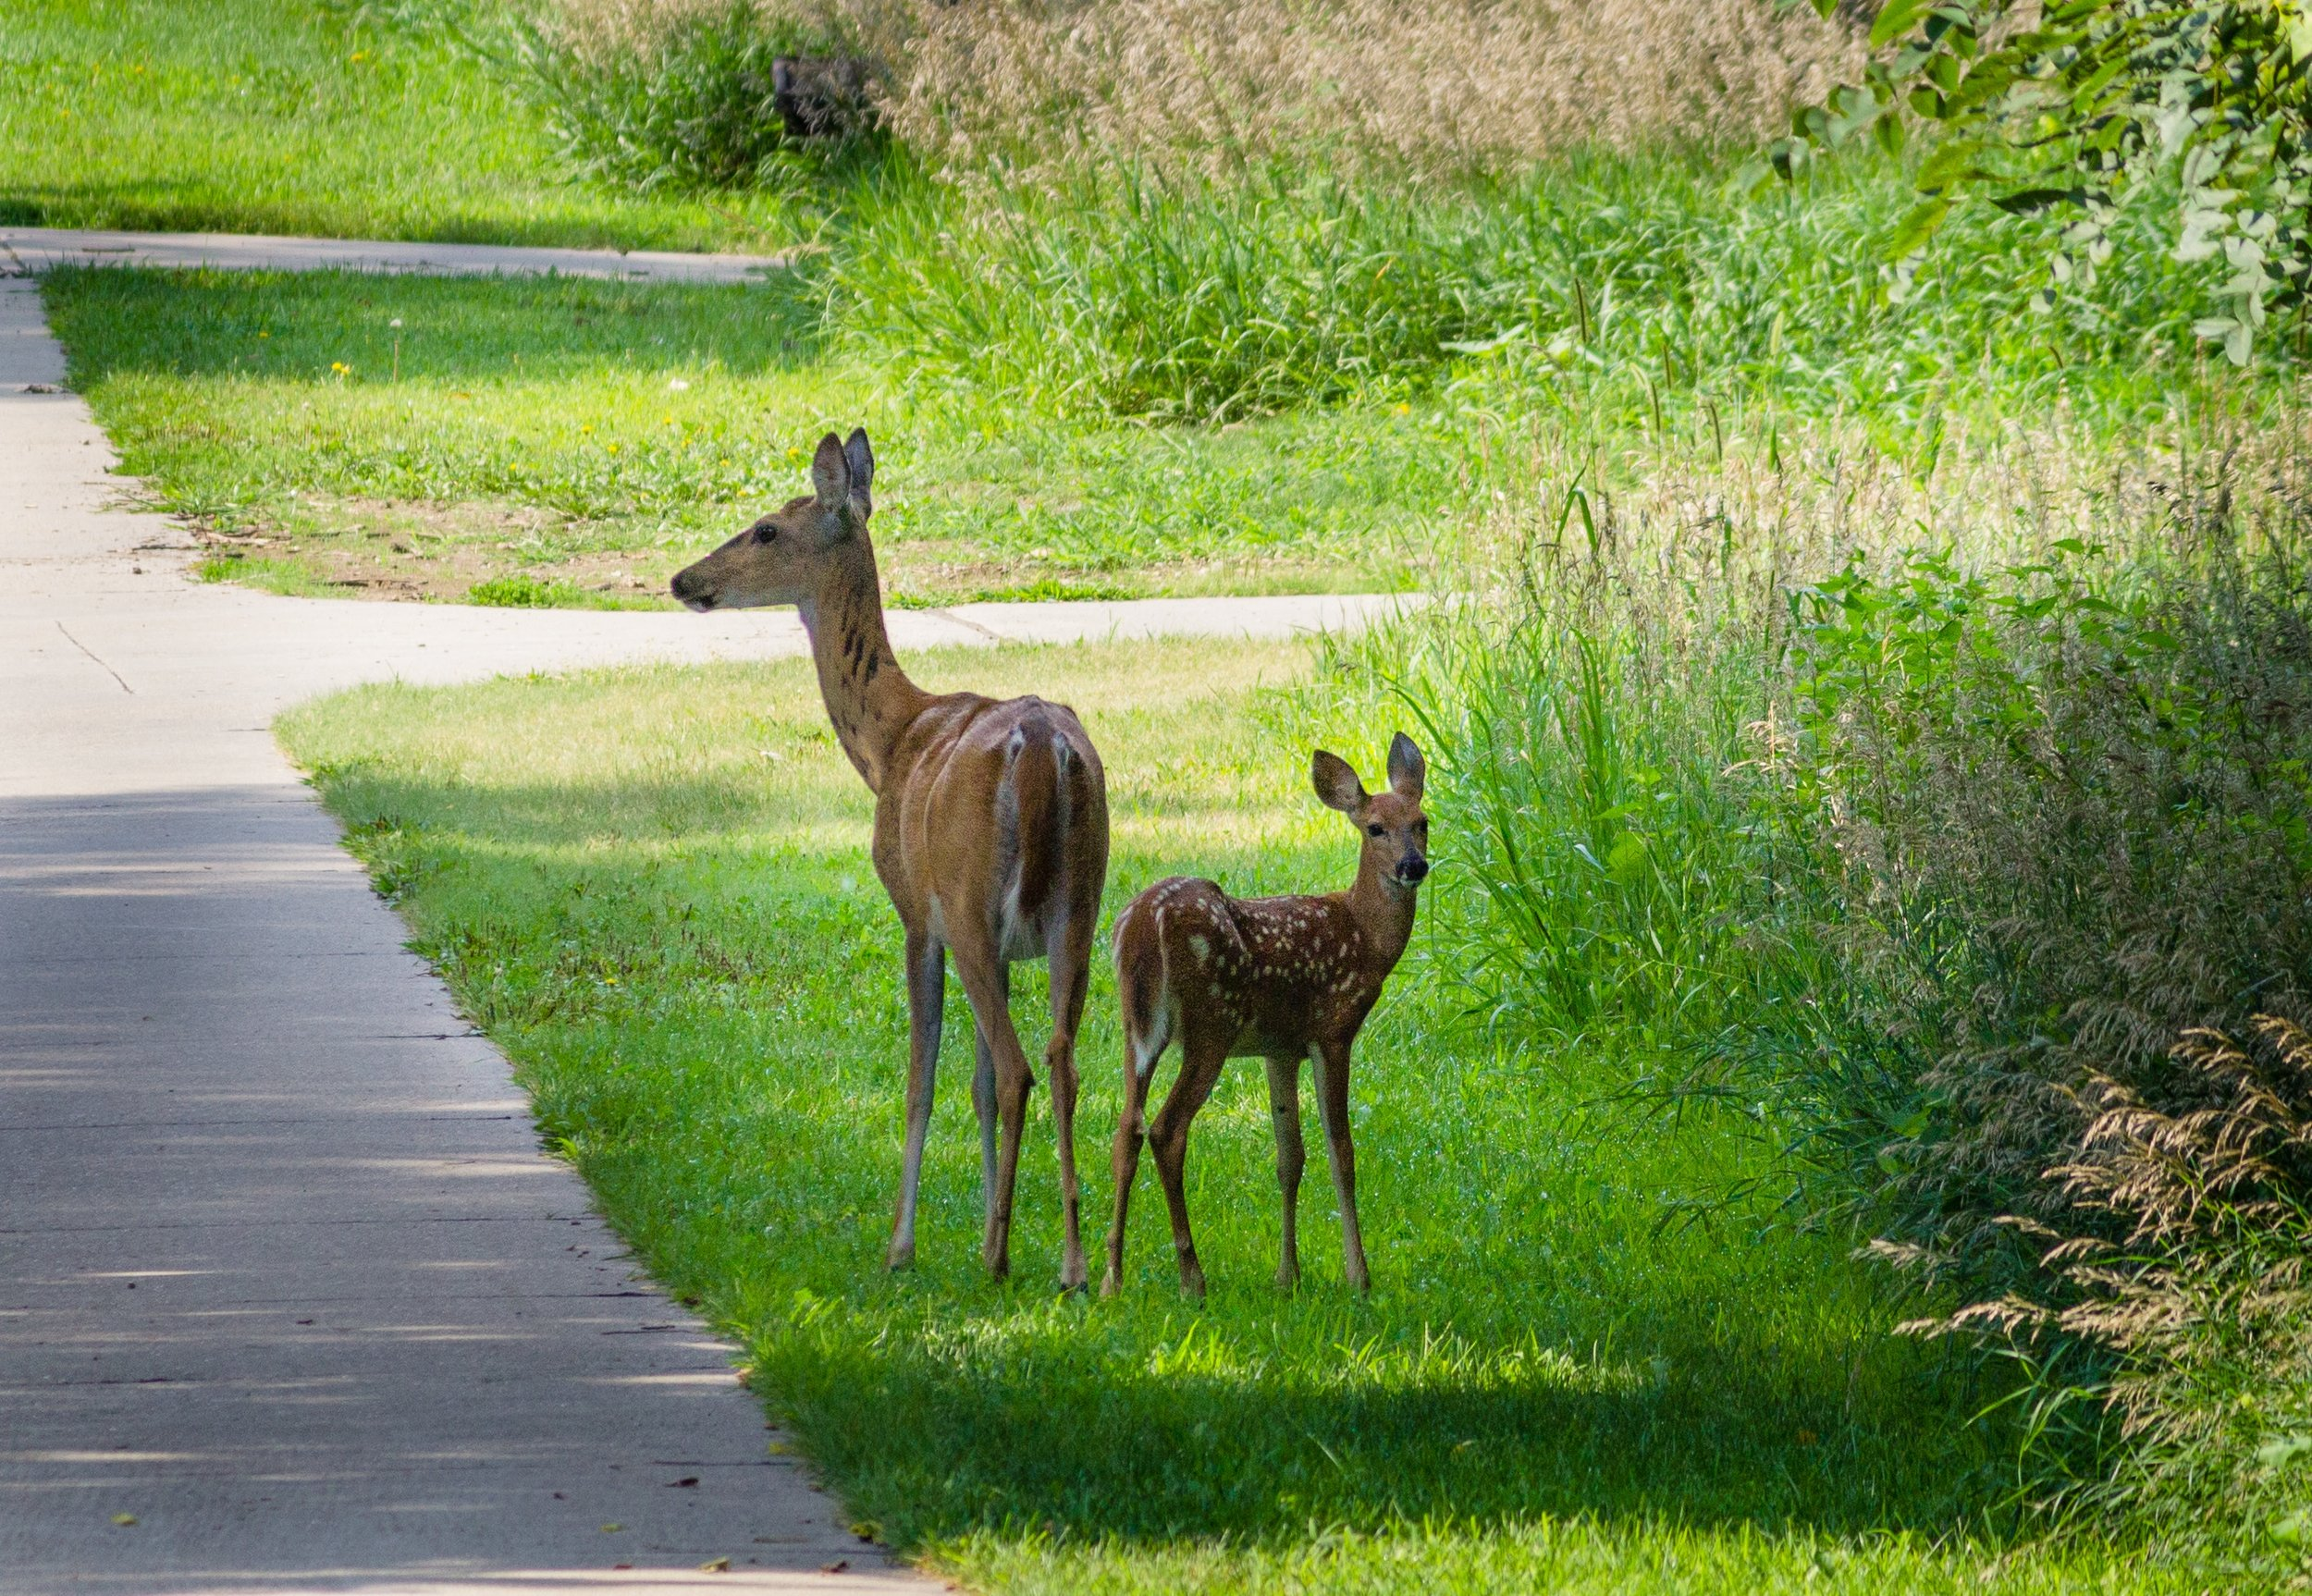 DEERvs.DEVELOPMENT - Wildlife Conservation in the face of the New West's housing surge